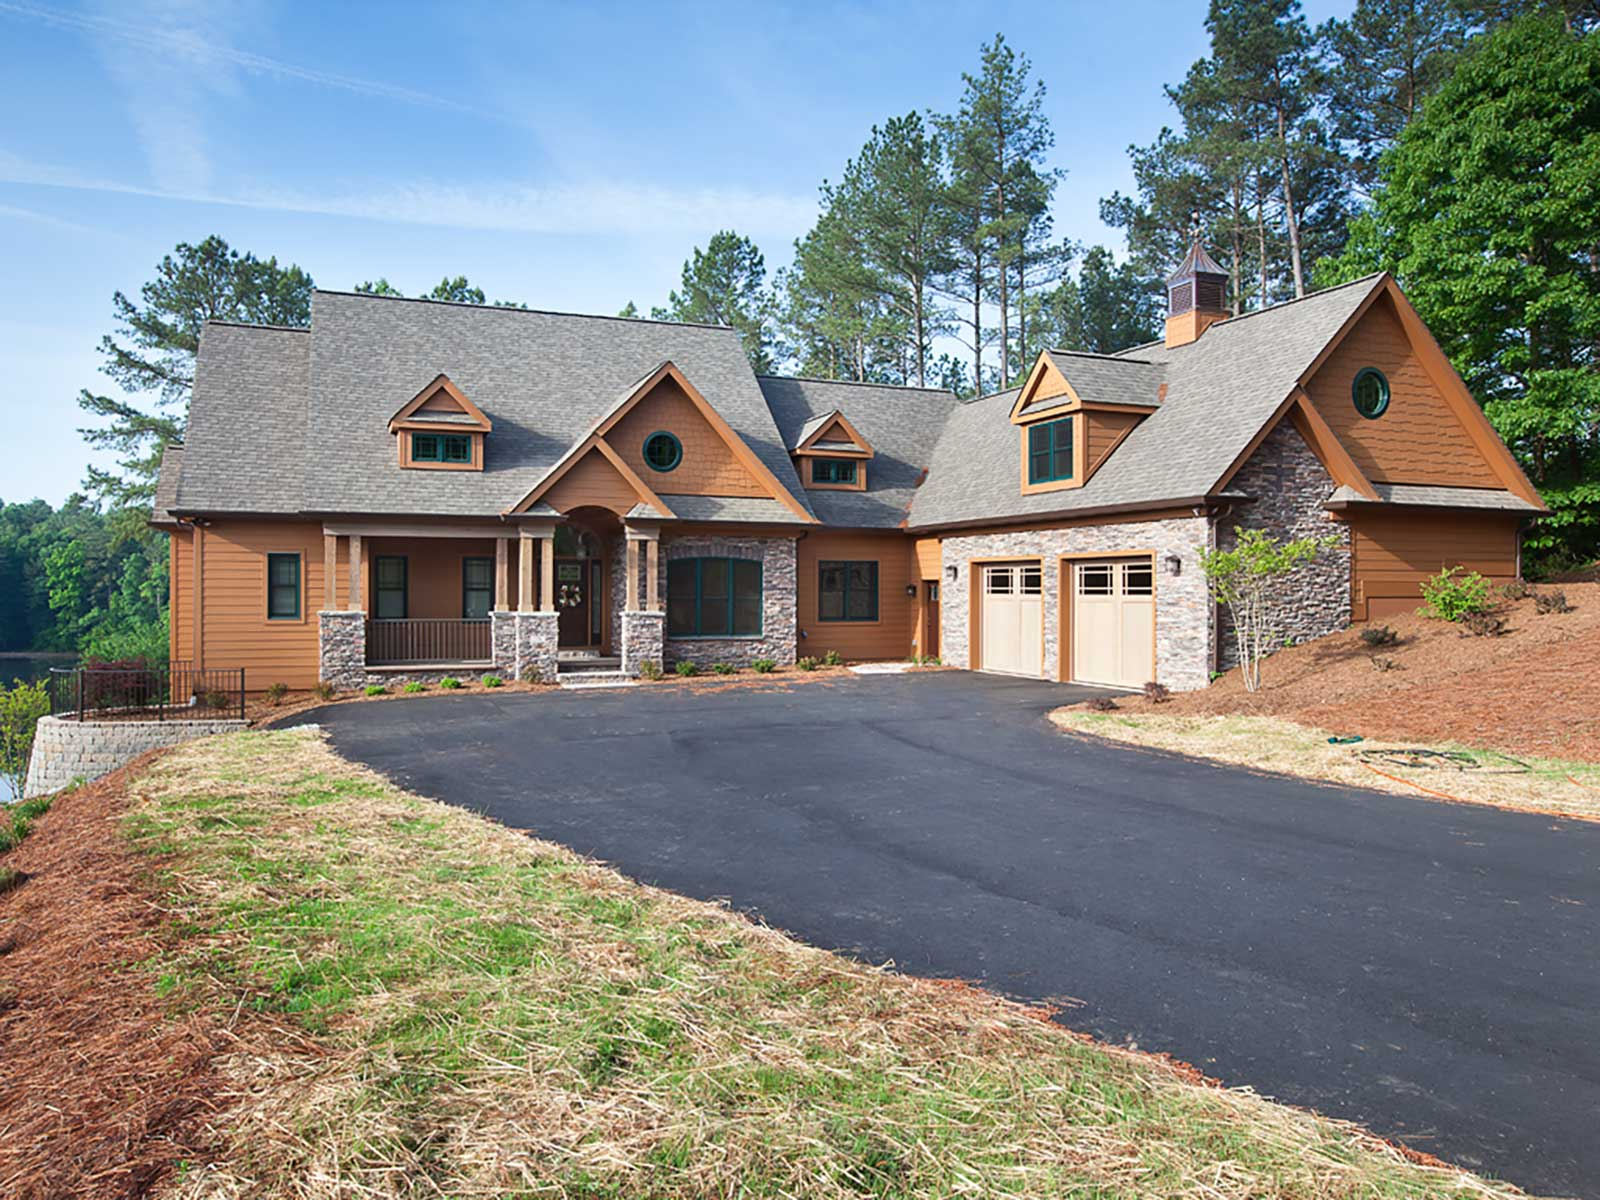 North carolina custom home contractor builder jcm for Custom home builder contract